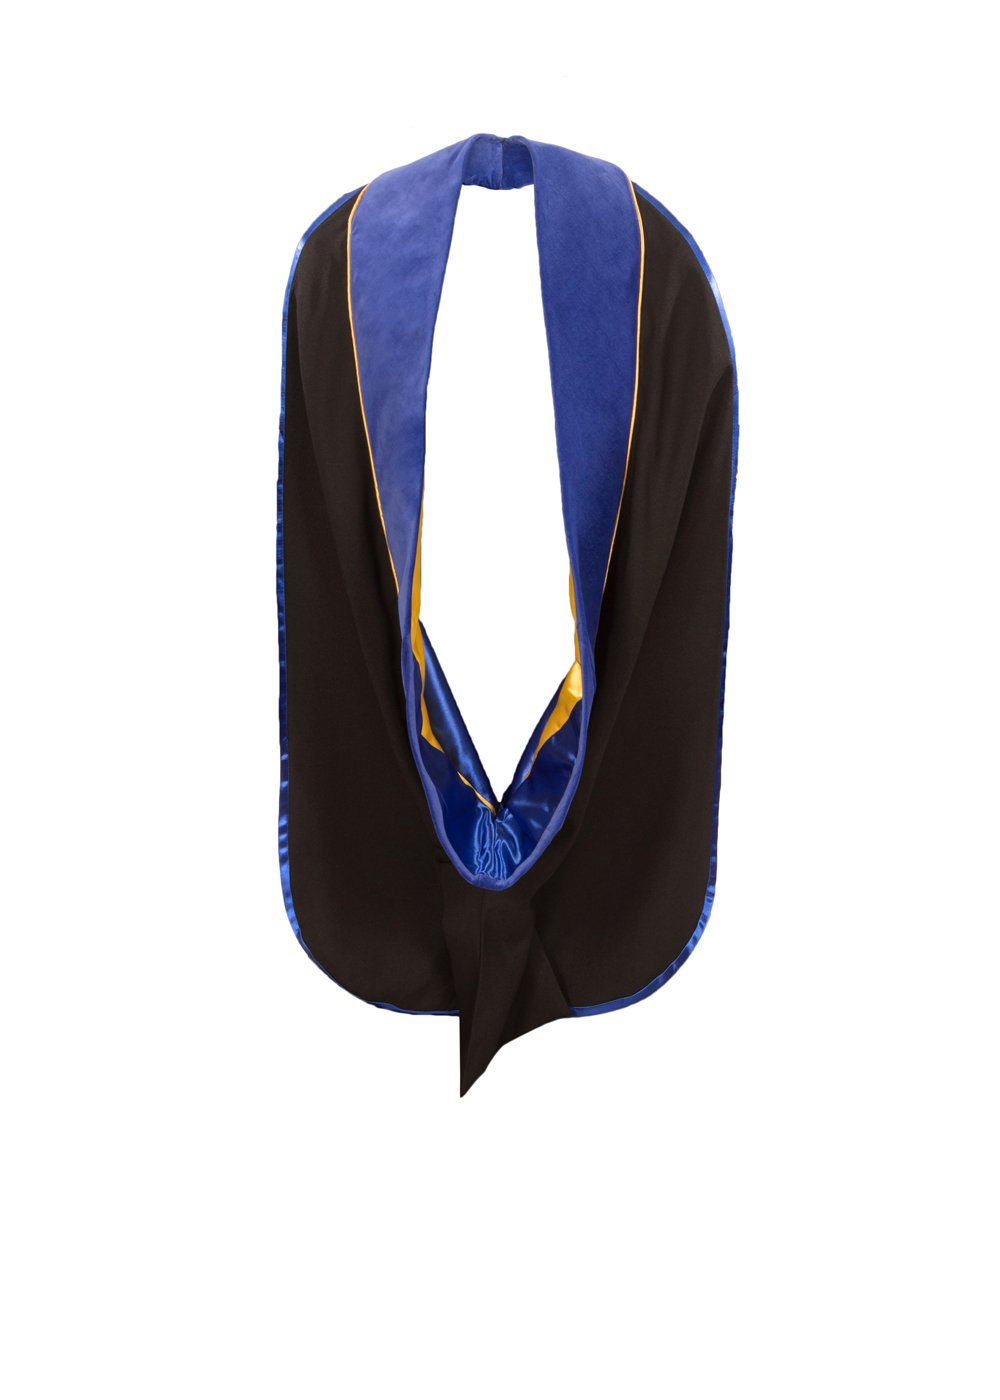 American Doctoral Hood (Royal Blue with Gold piping)